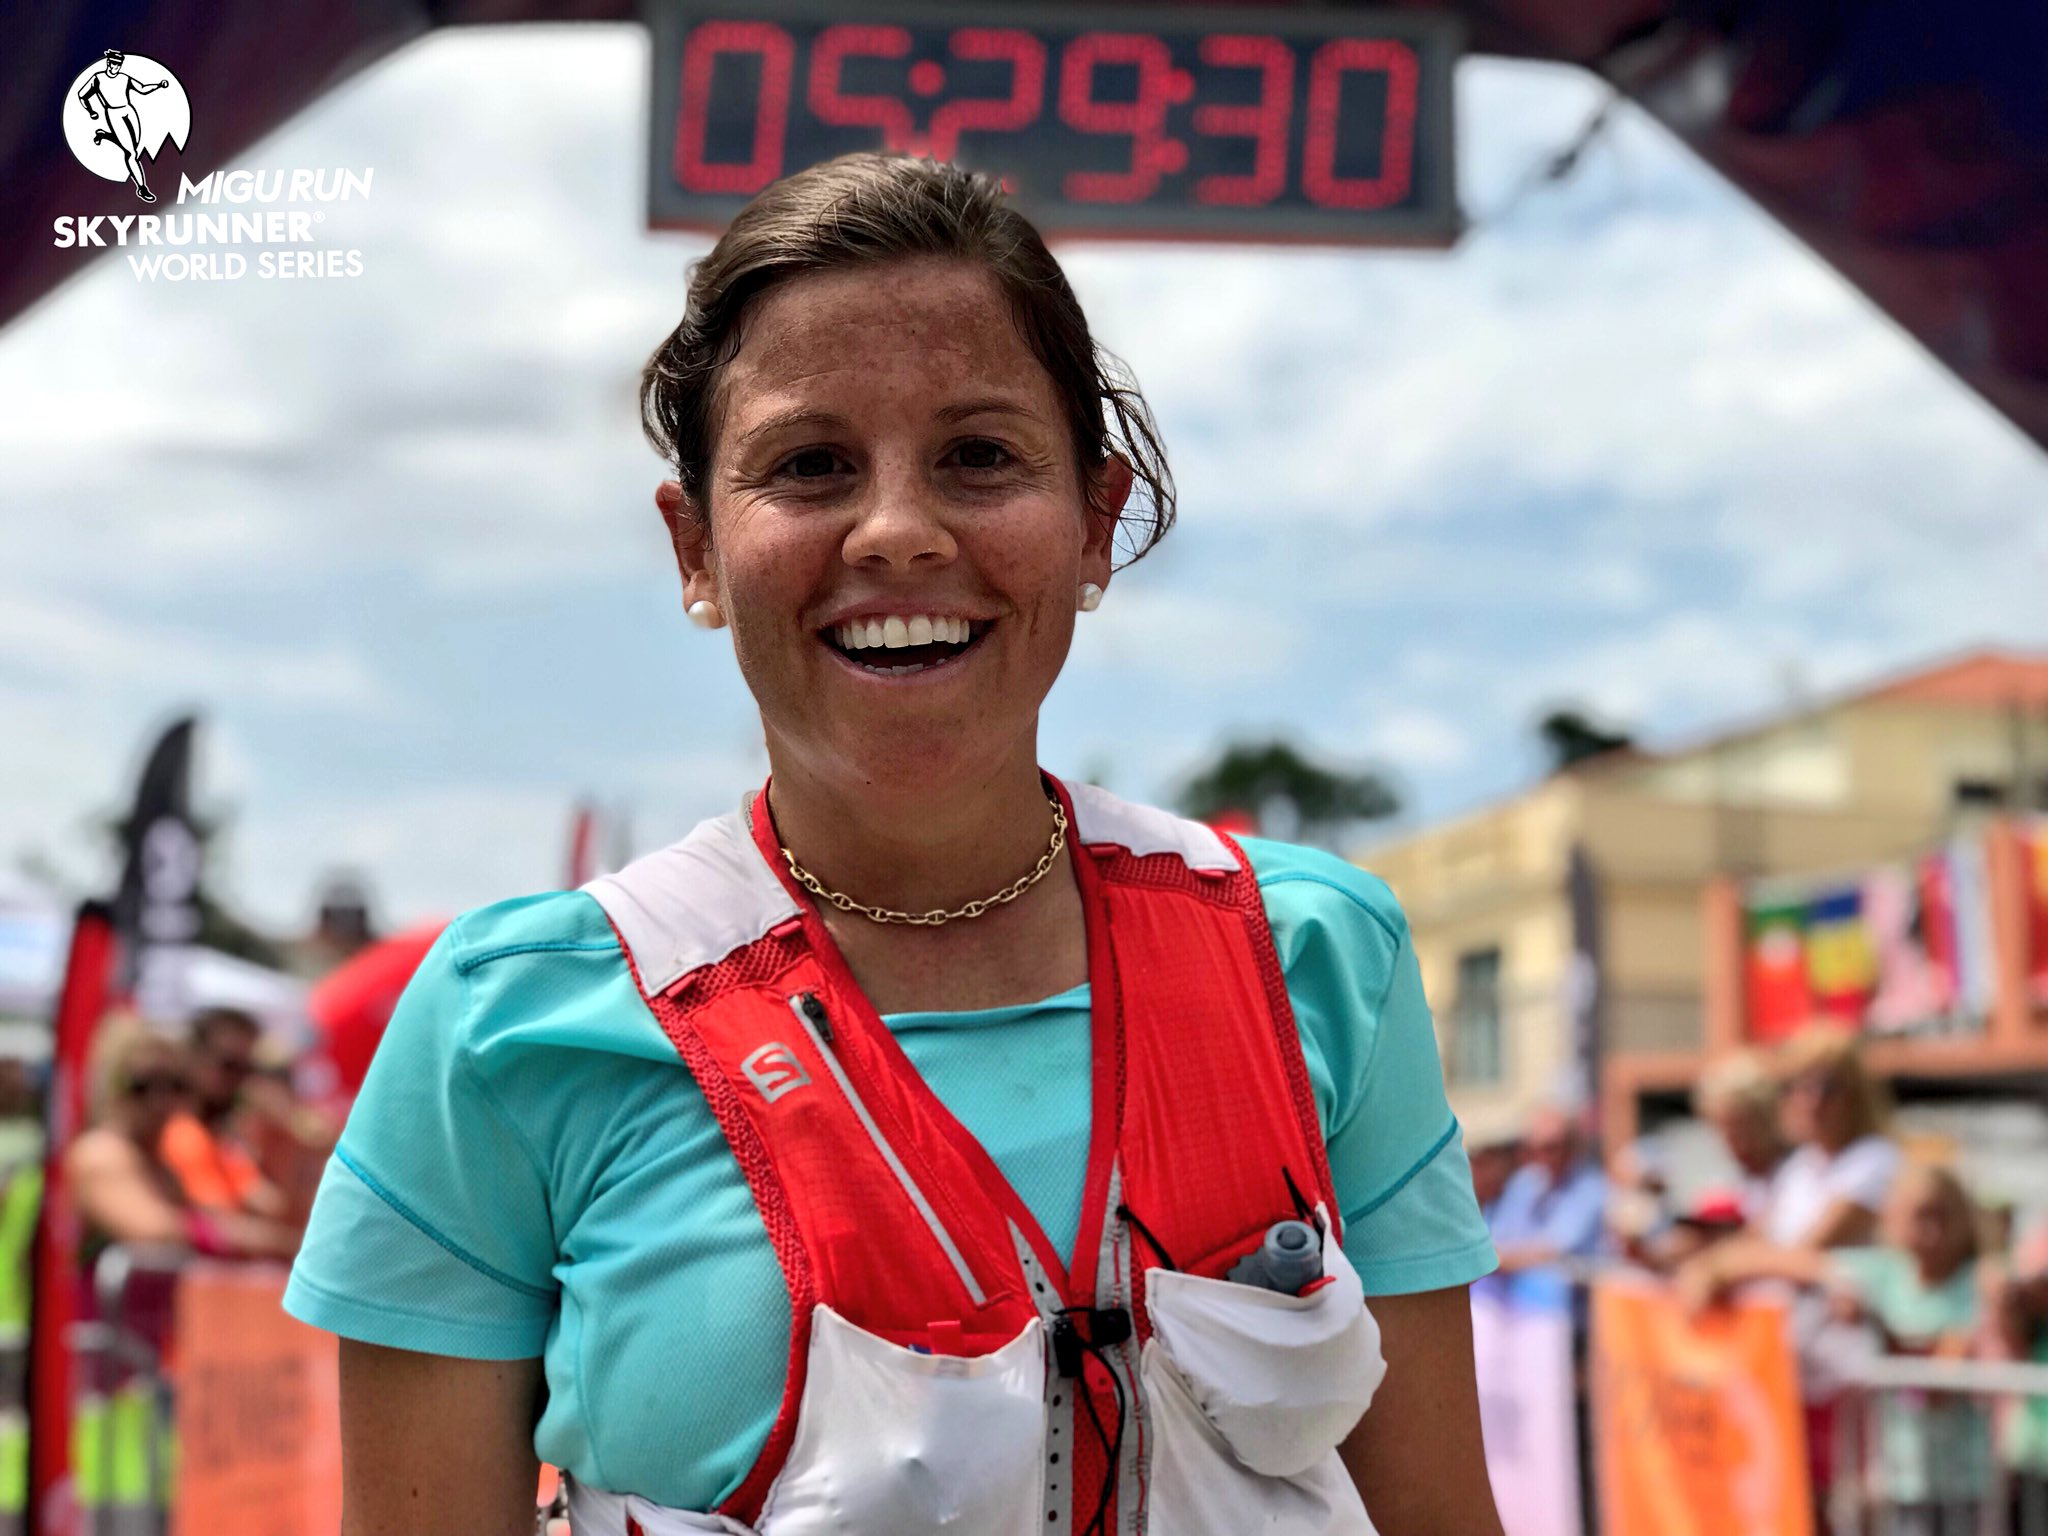 """Oh how much we missed this smile: Stevie Kremer... is BACK! She finishes 3rd in the #OlympusMarathon2018 after 5h28'. """"That was a looong day, but it's not bad for a mom like me, is it?"""" Actually it's awesome! #SWS18 https://t.co/2y5B3hvLjR"""